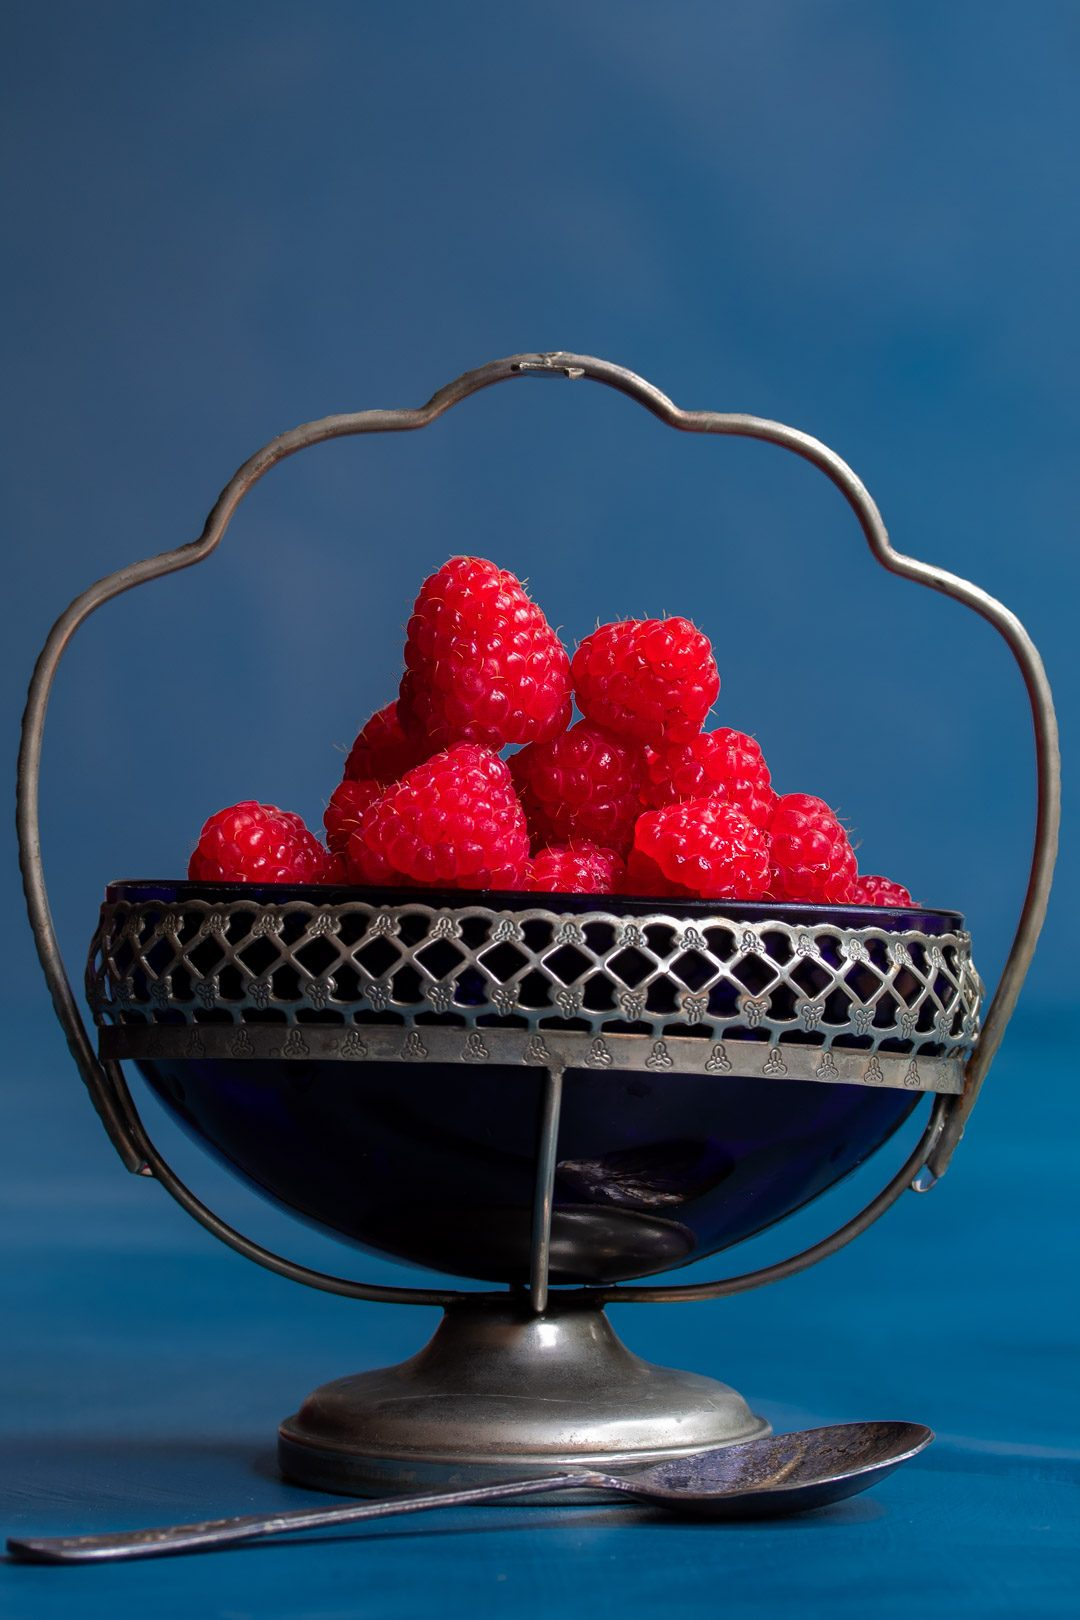 Making Raspberry shrub syrup drinking vinegar with raspberries in blue glass vintage sugar bowl